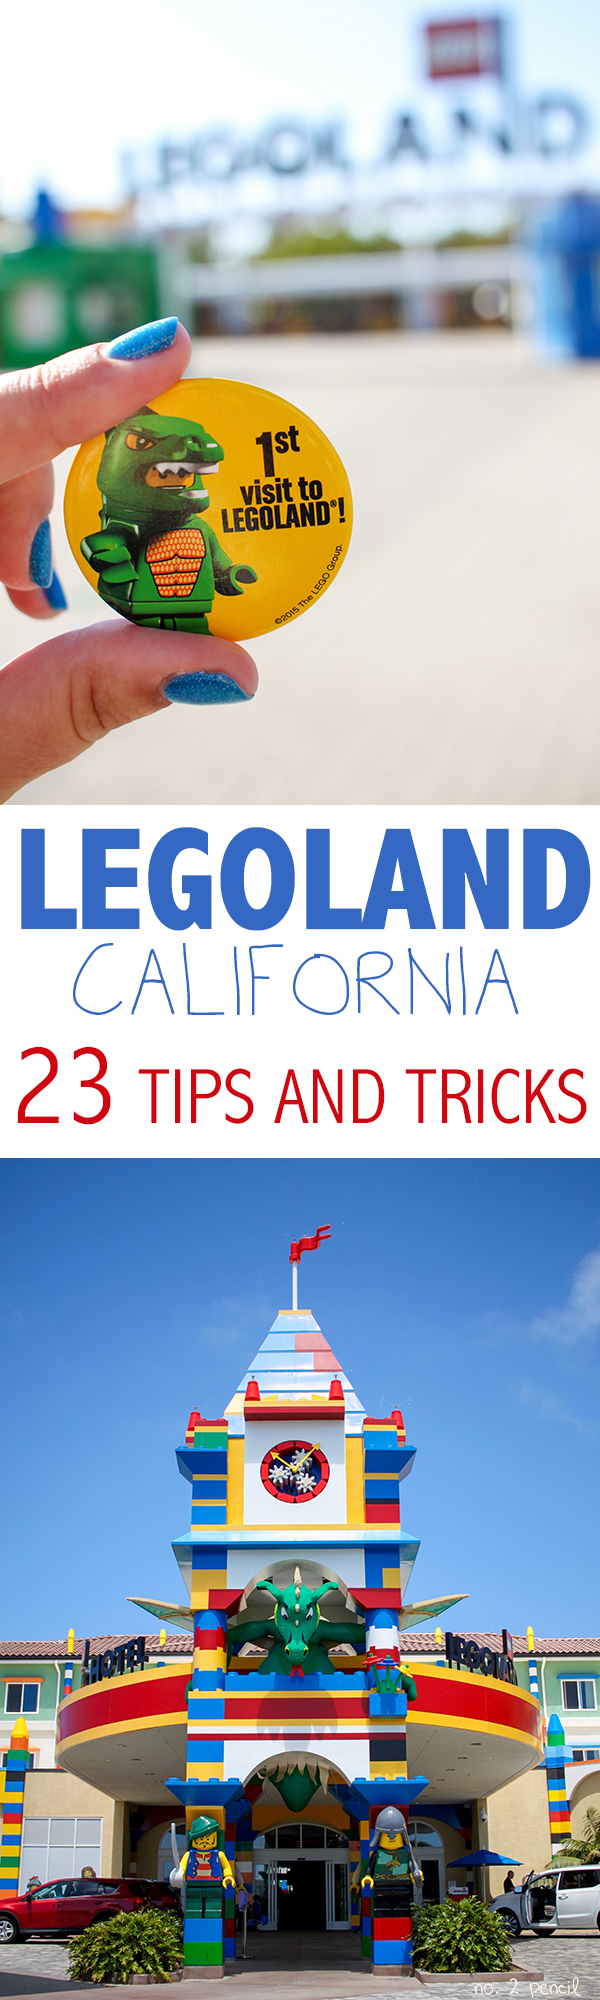 LEGOLAND Tips and Tricks - 23 tips for visiting LEGOLAND California